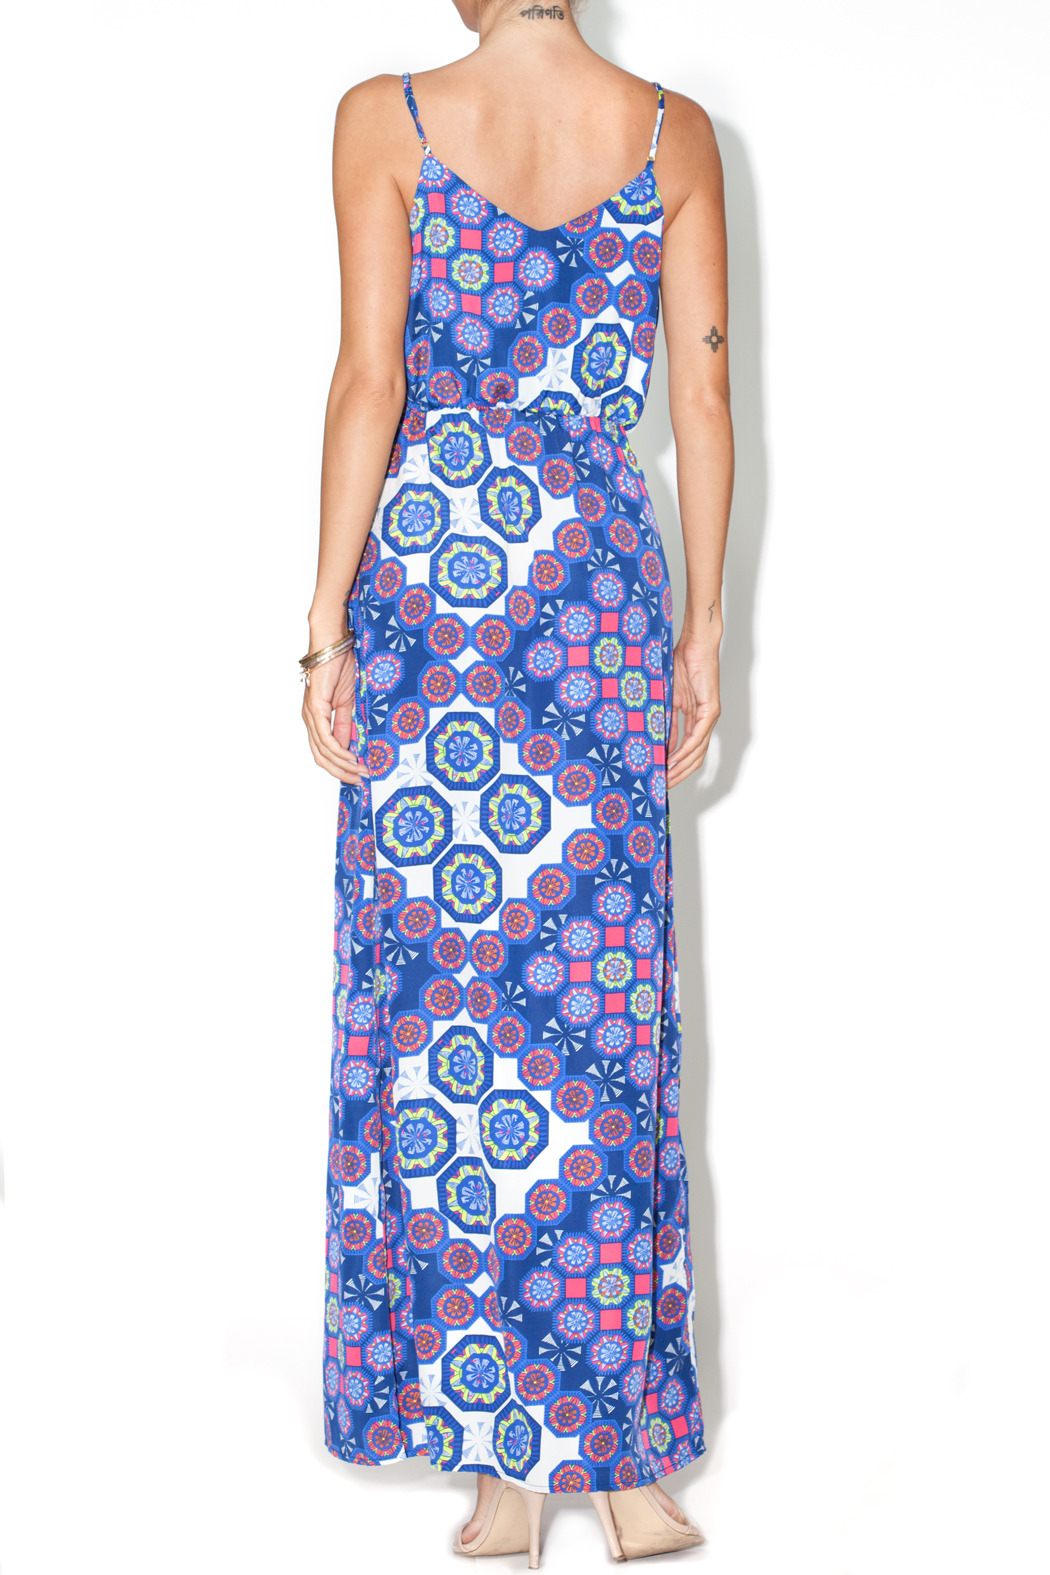 Skies Are Blue Traveler's Printed Maxi - Side Cropped Image